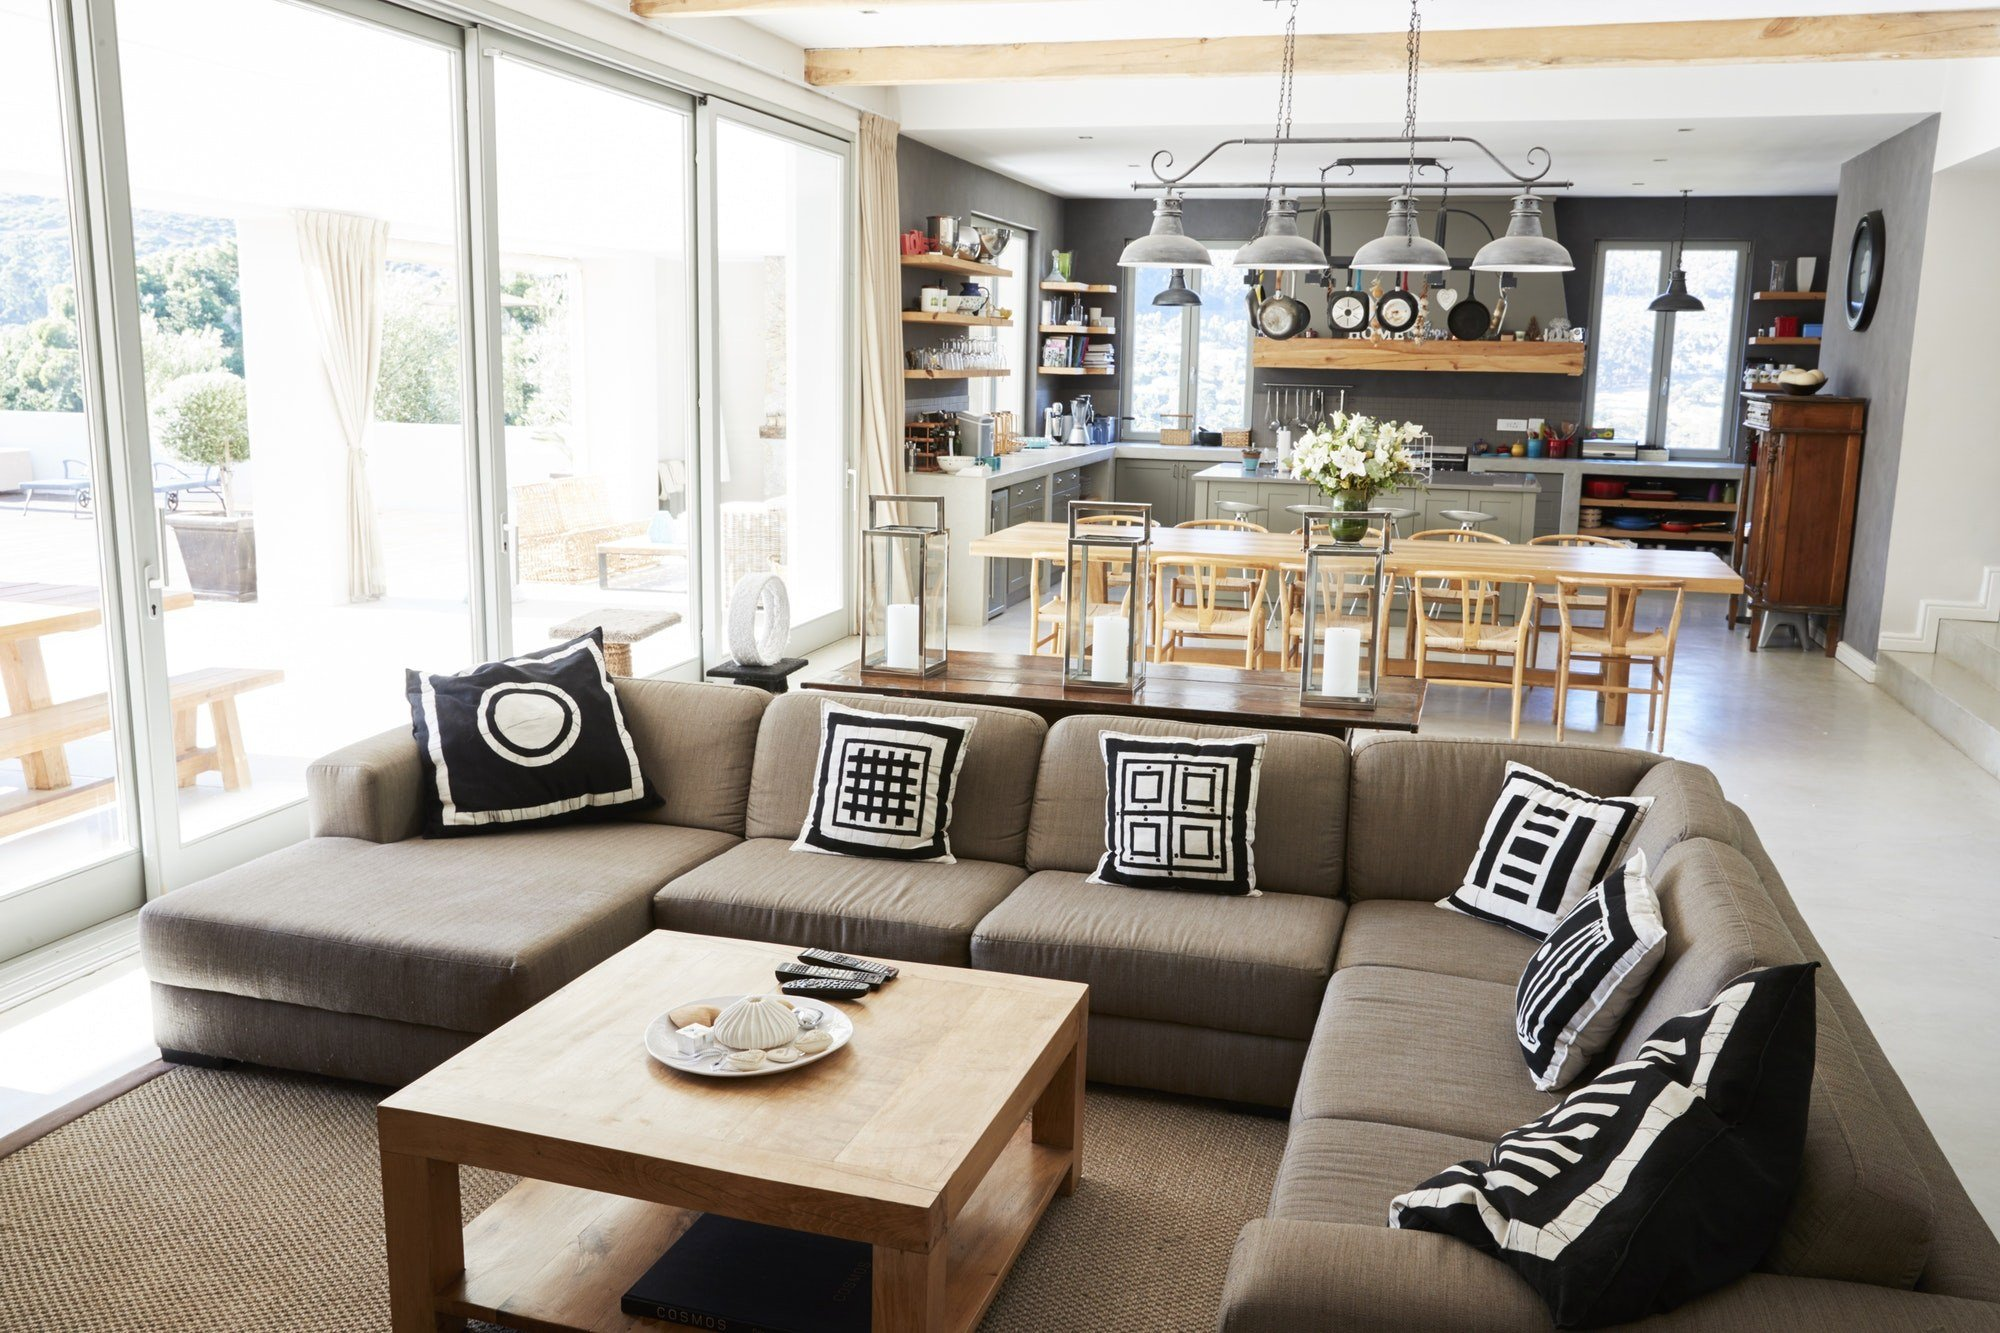 Collection of Living Room And Dining Room Details @house2homegoods.net